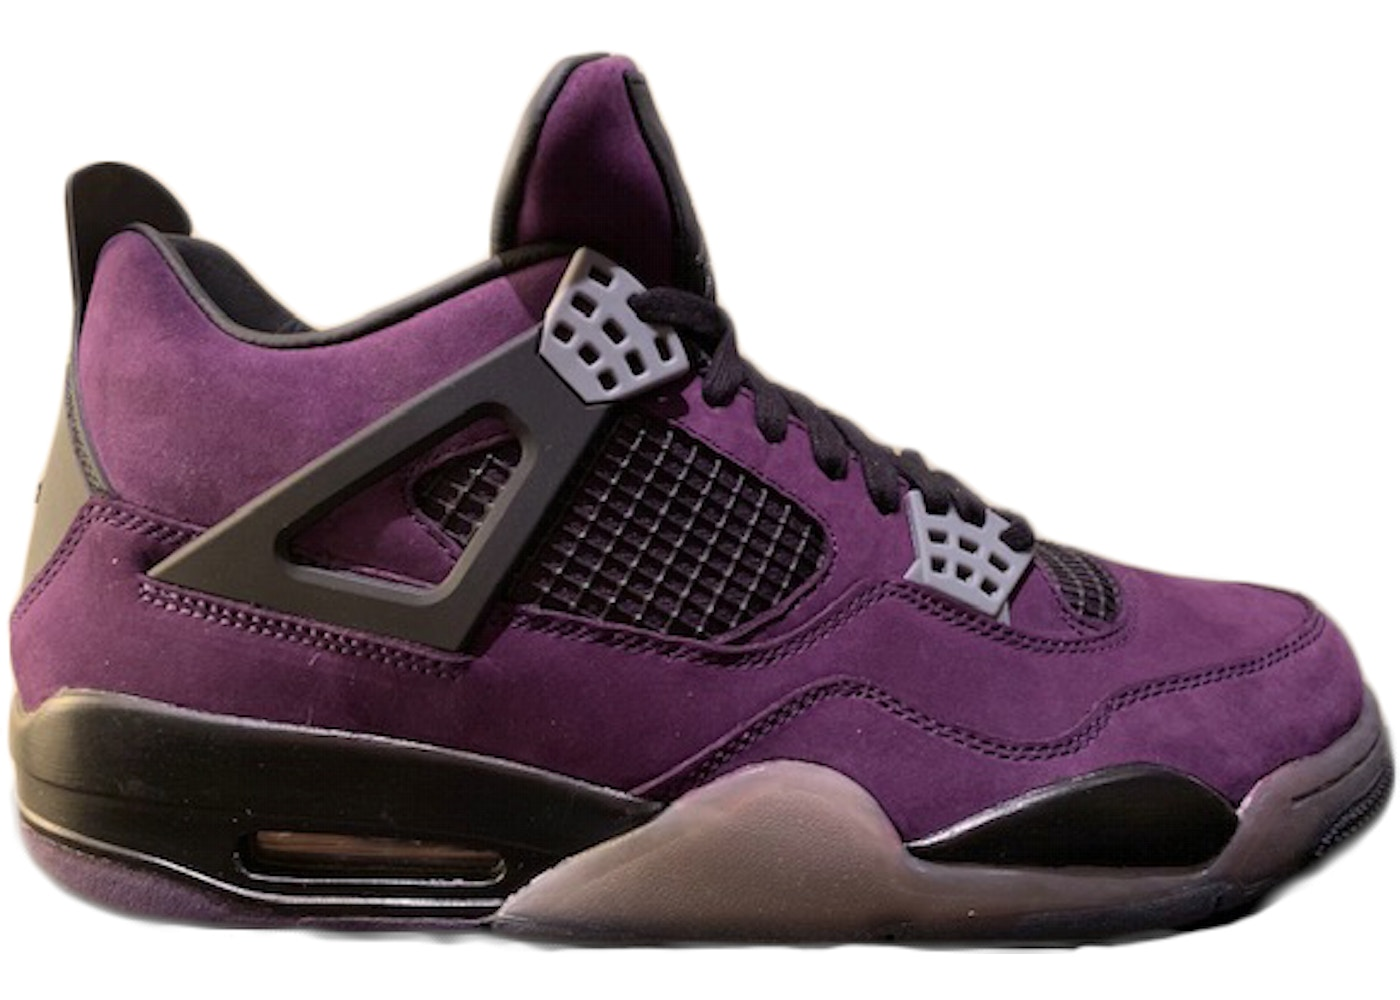 137fa733ed949b Jordan 4 Retro Travis Scott Purple (Friends and Family) - 766296 LN4